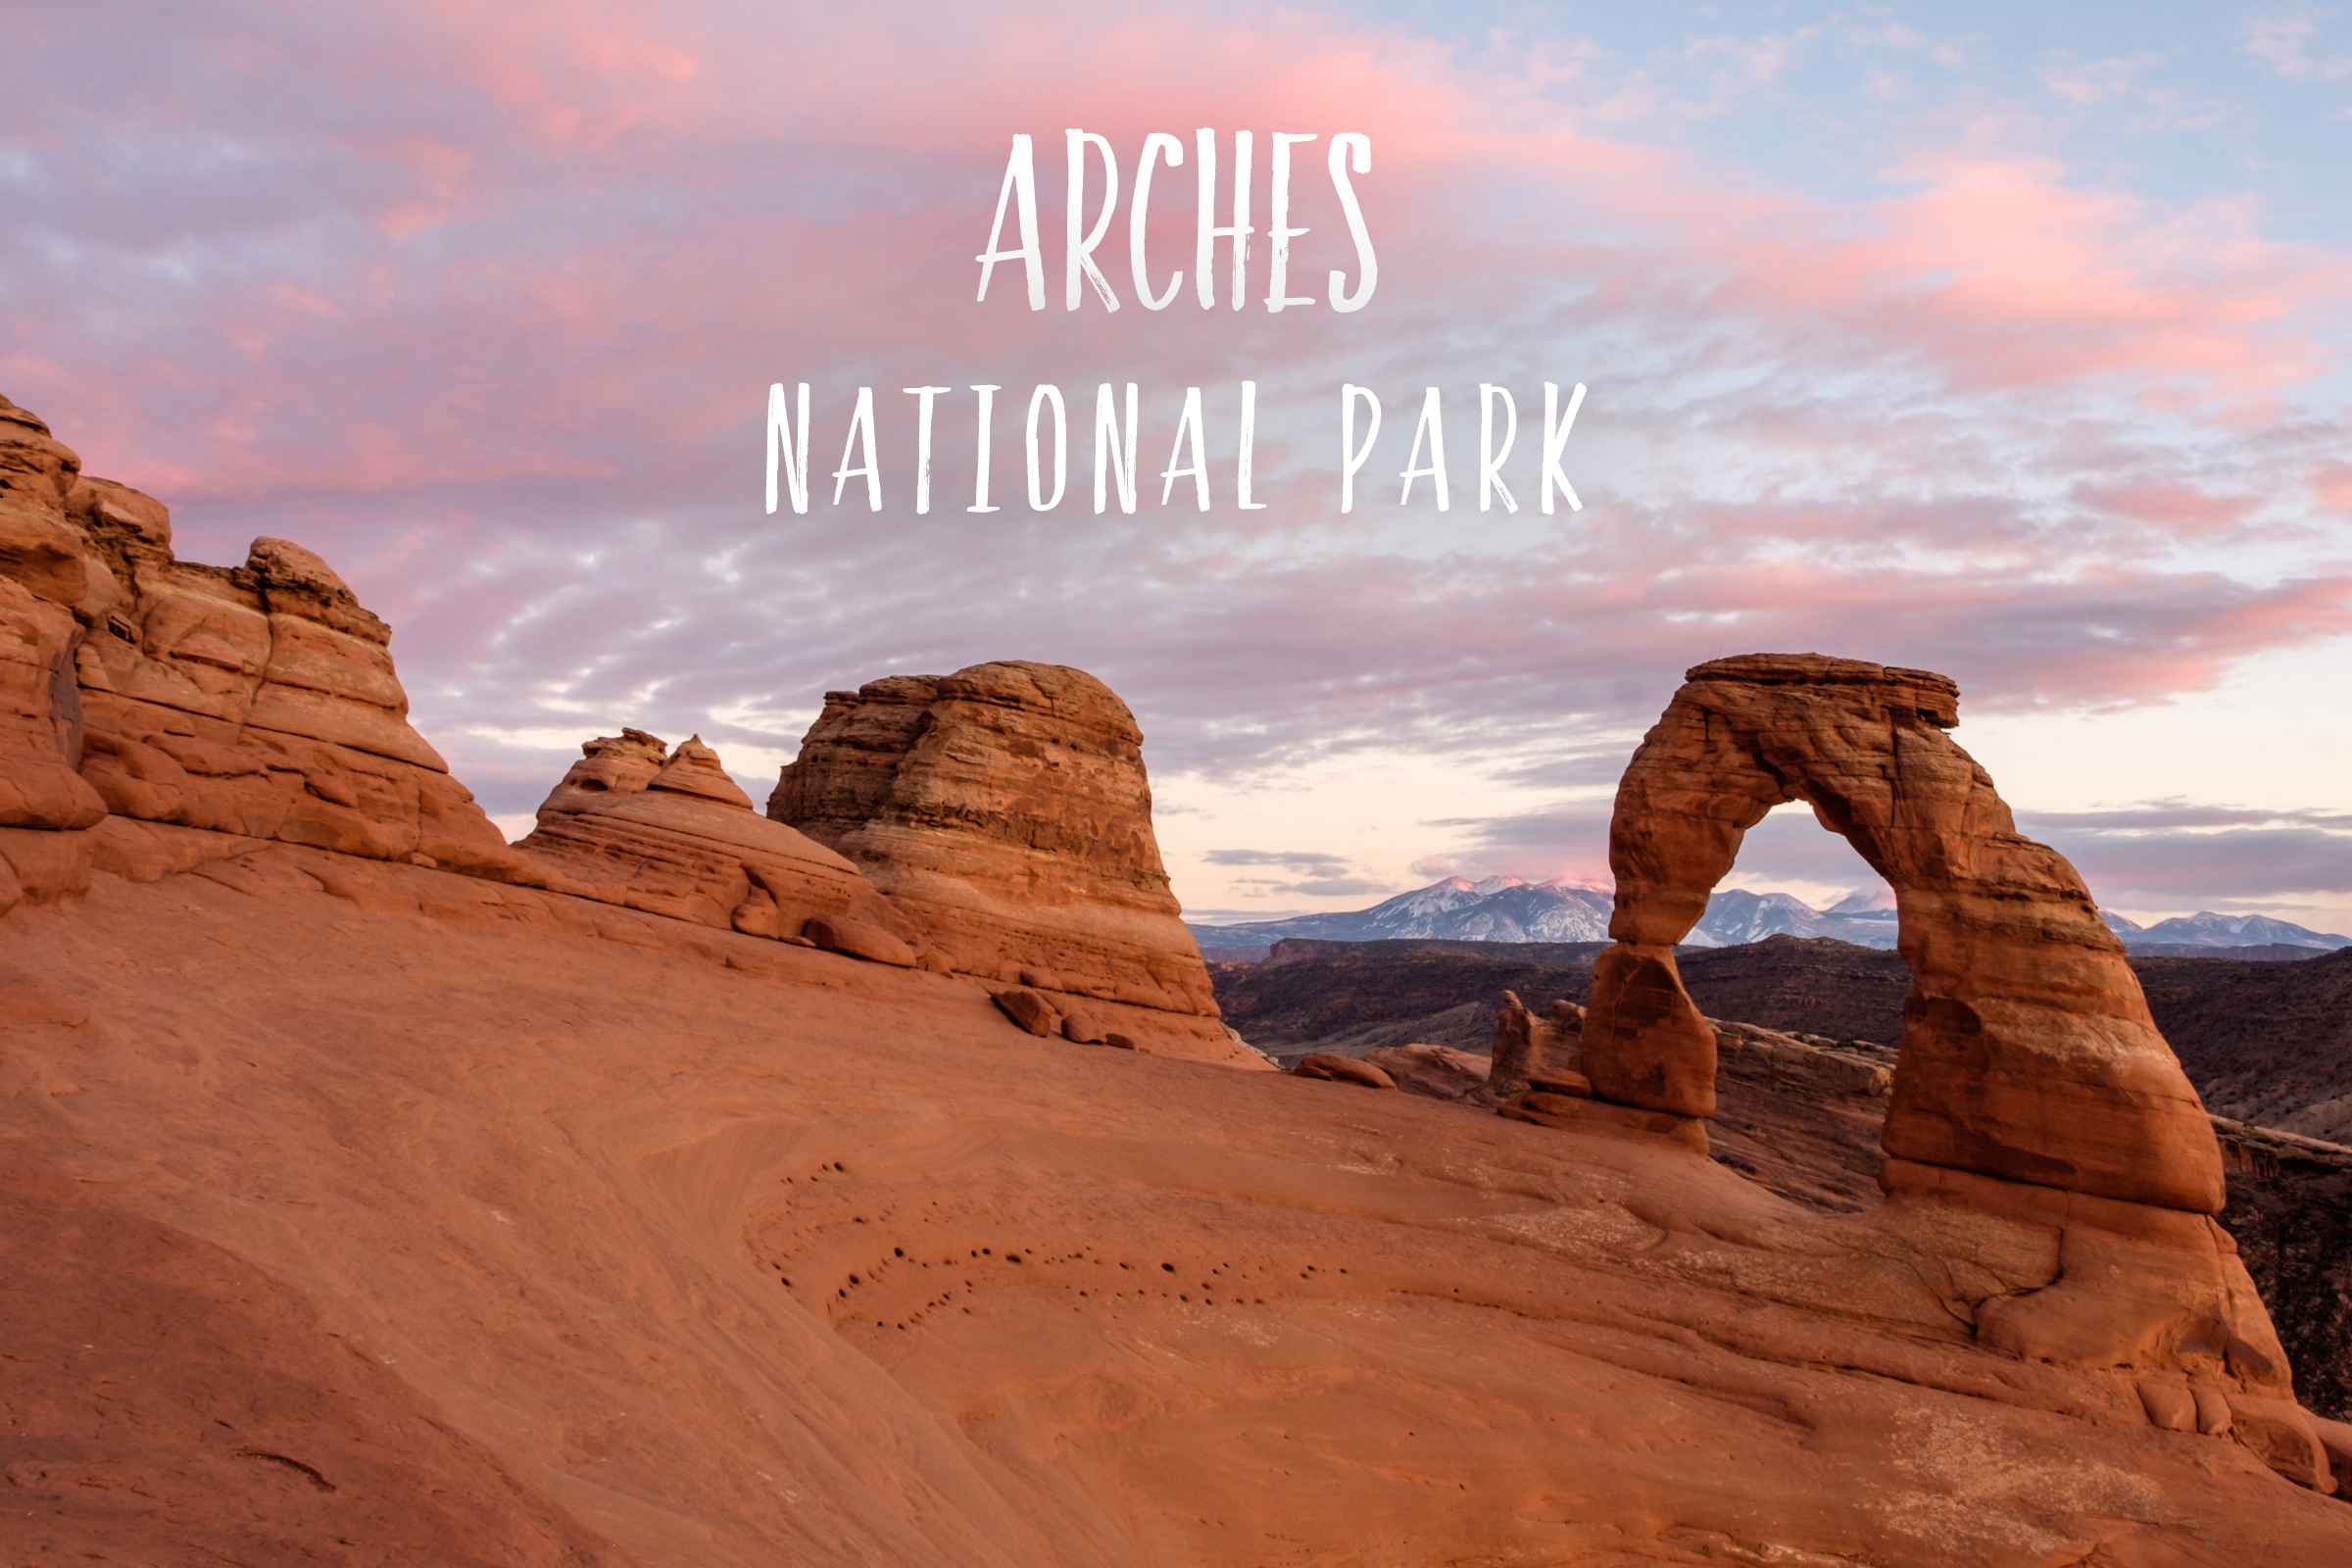 Park 50/59: Arches National Park in Utah